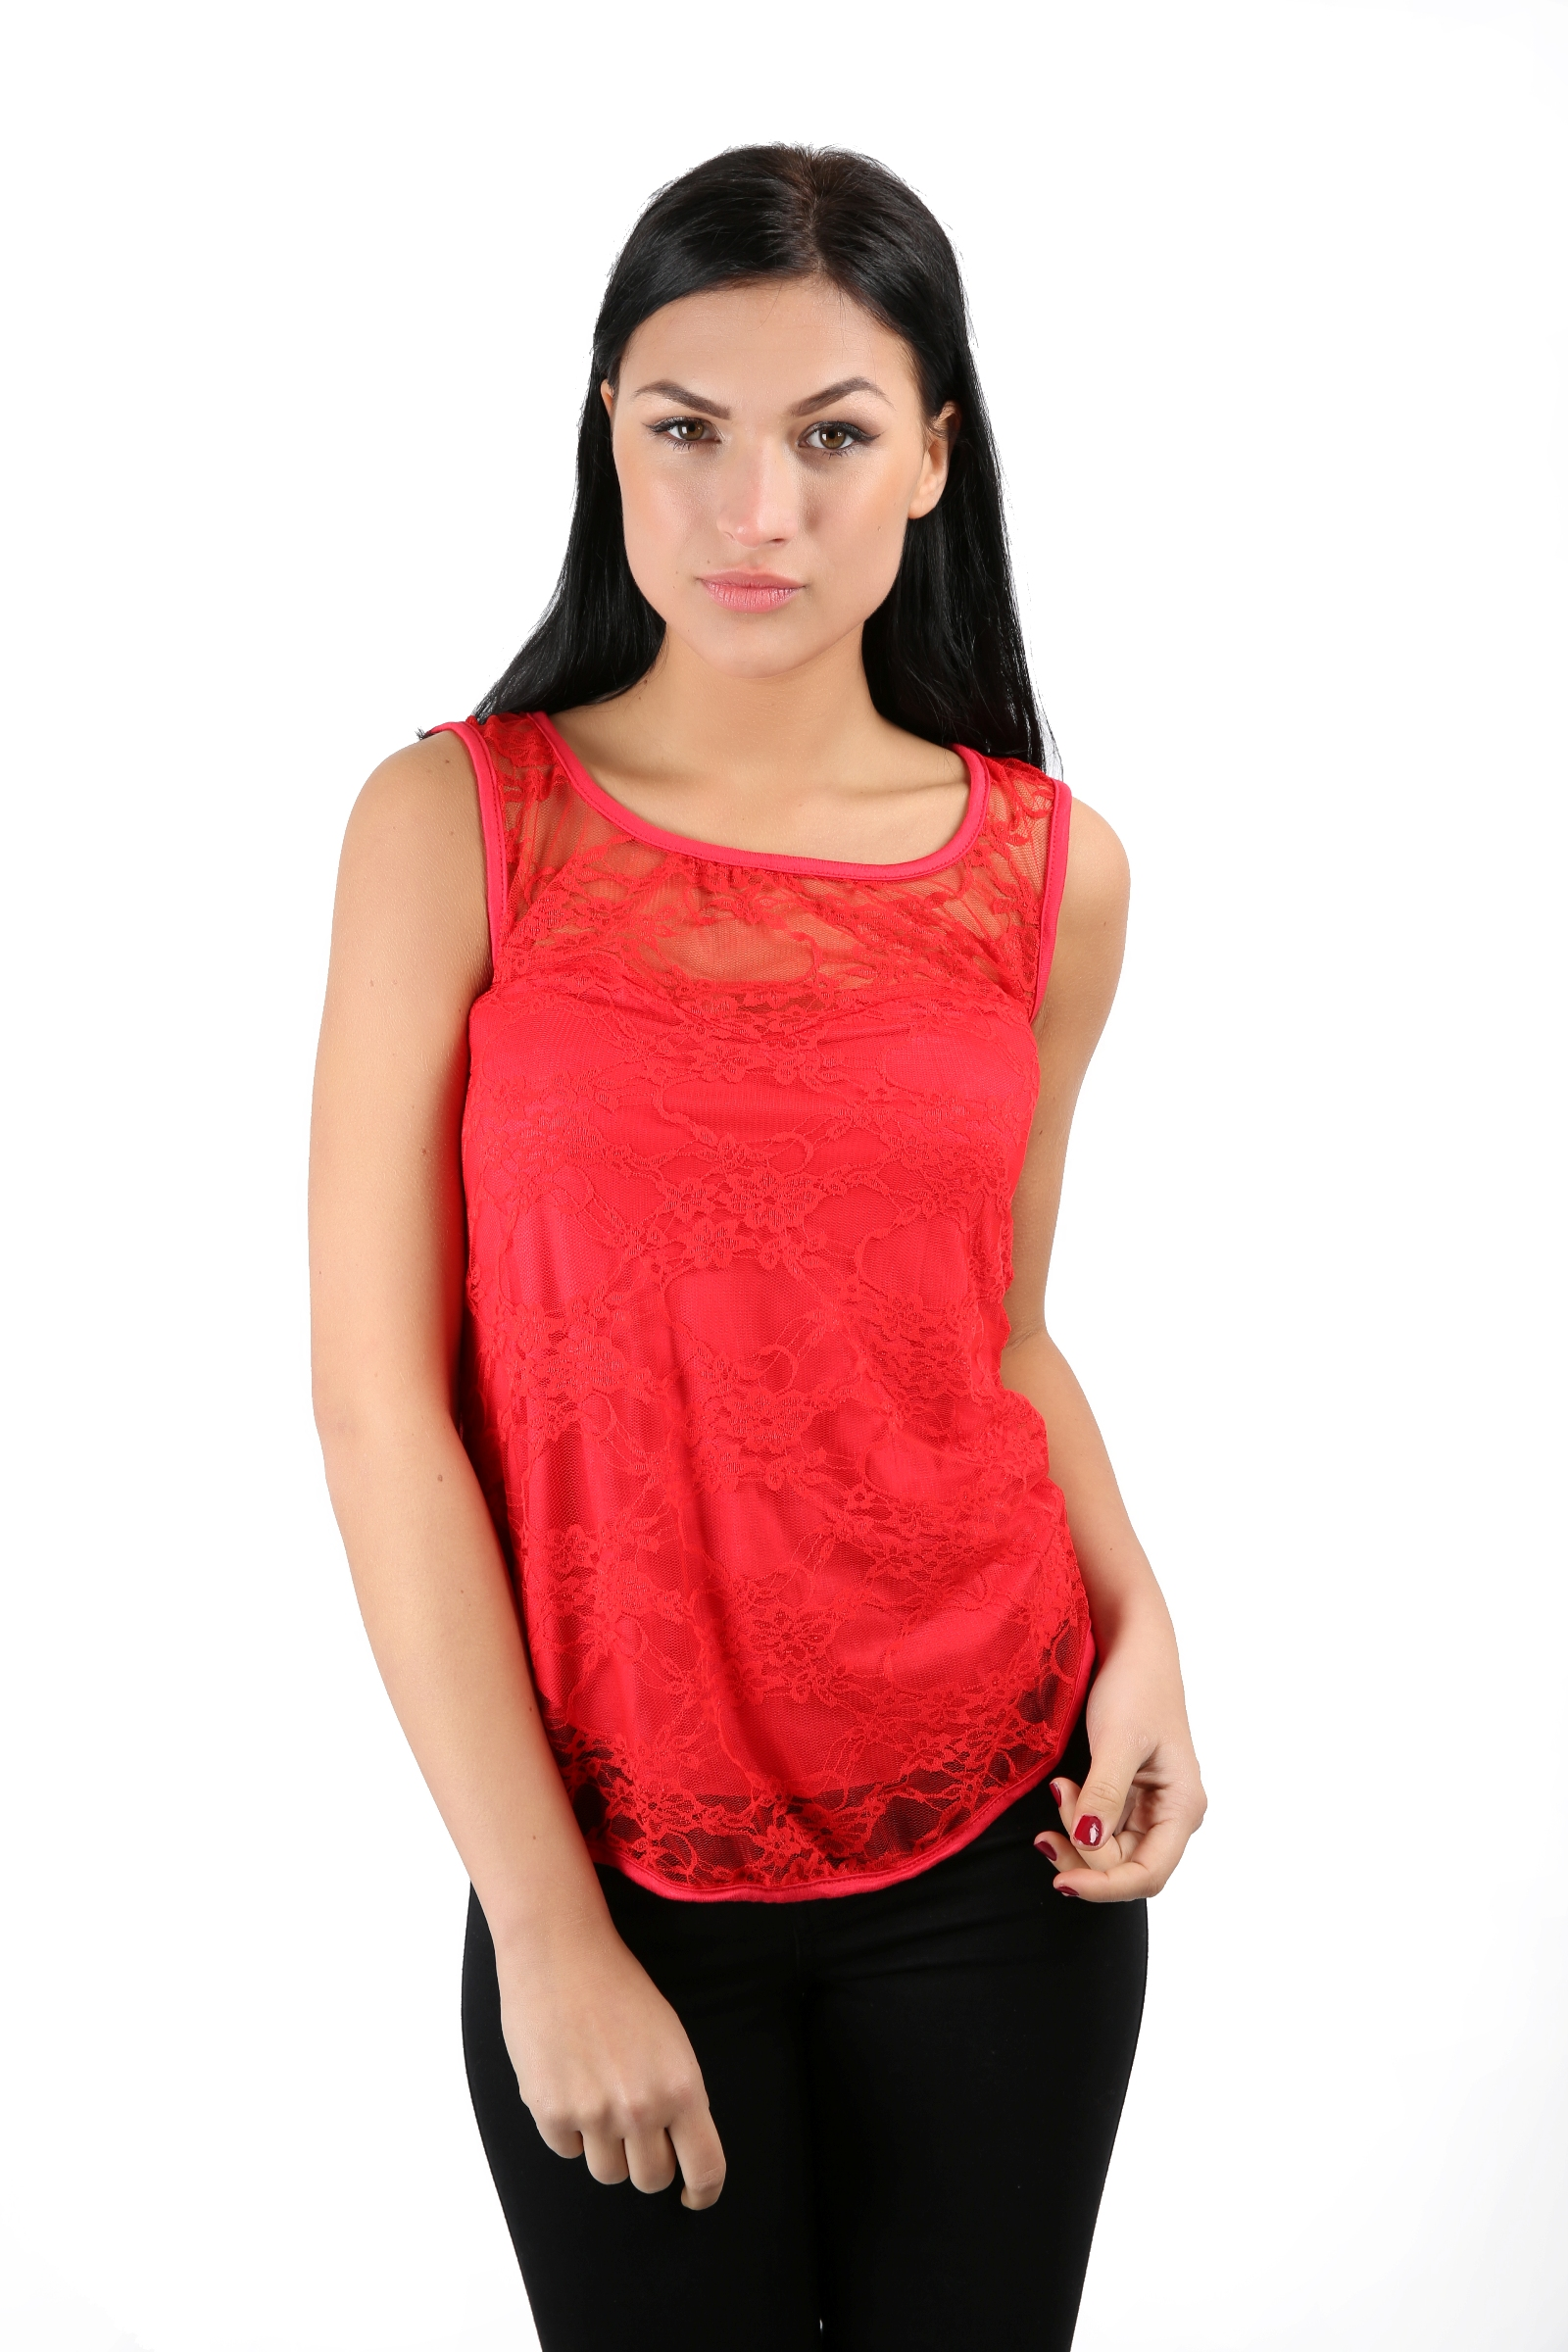 Ladies stretch bodycon sleeveless lace top womens t shirt for Sleeveless dress shirt womens